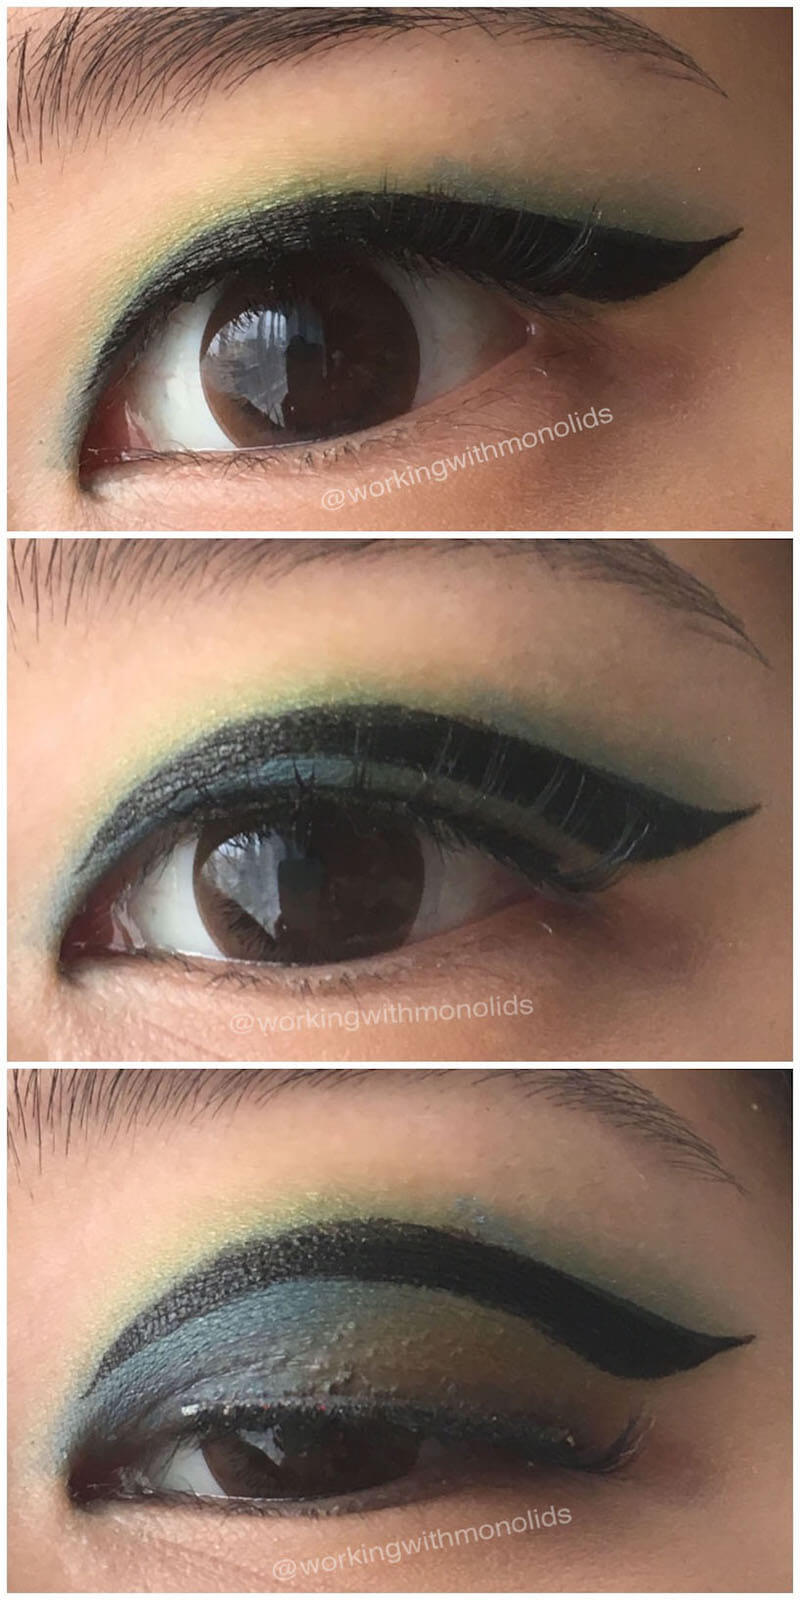 Three close-up images of an eye revealing that the placement of the eyeliner is above the mobile lid